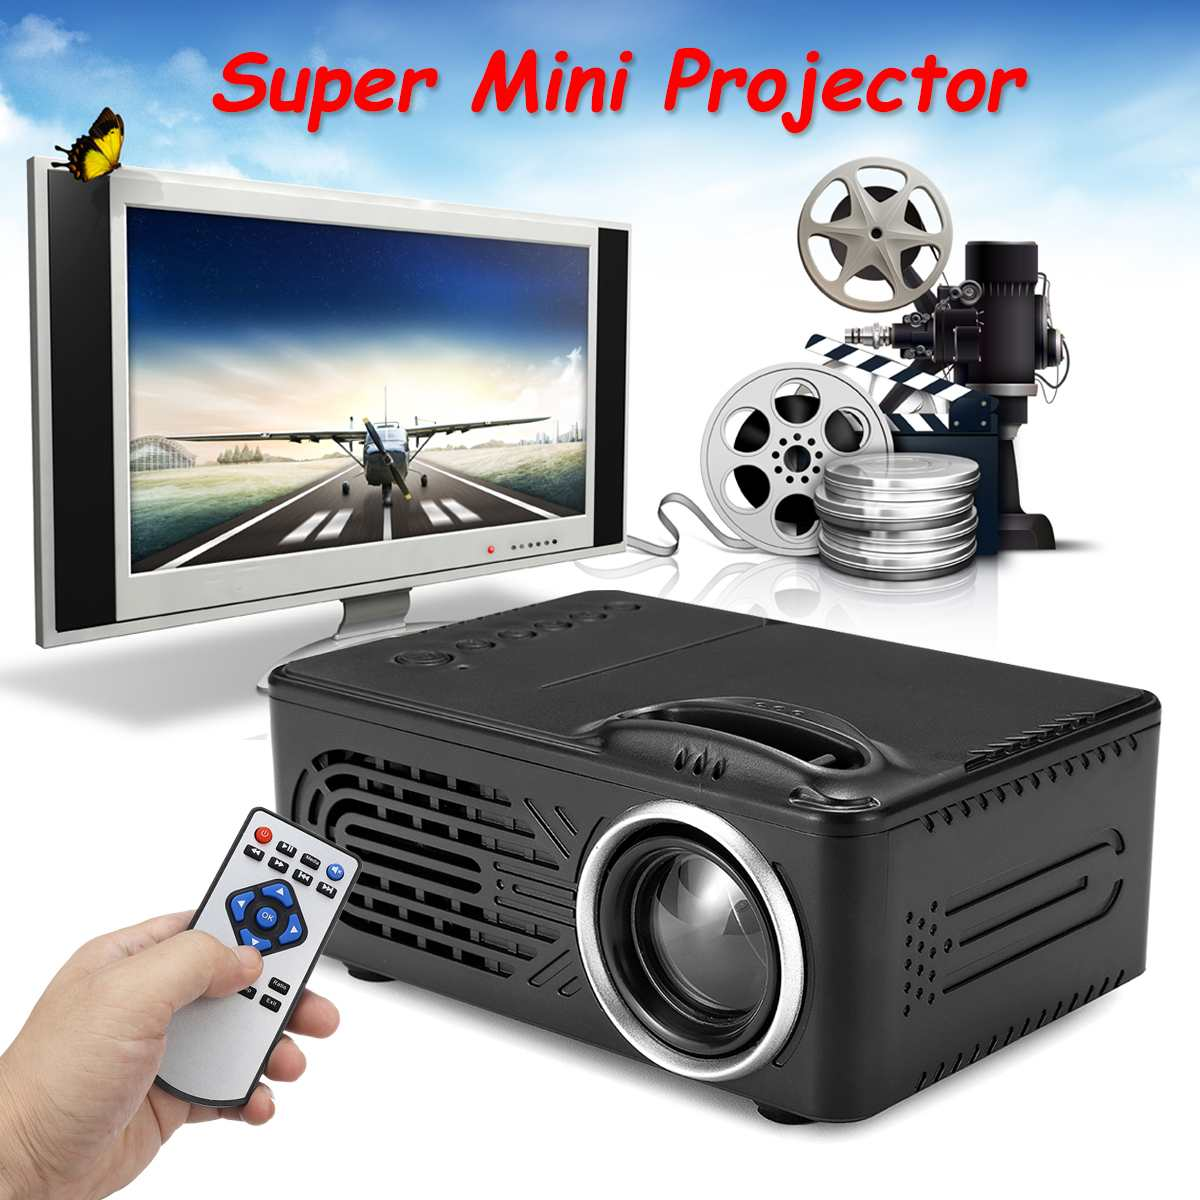 Projector Media-Player Cinema Eu-Plug RD-814 Portable 220V 1080P TV 3D HDMI USB Theater title=